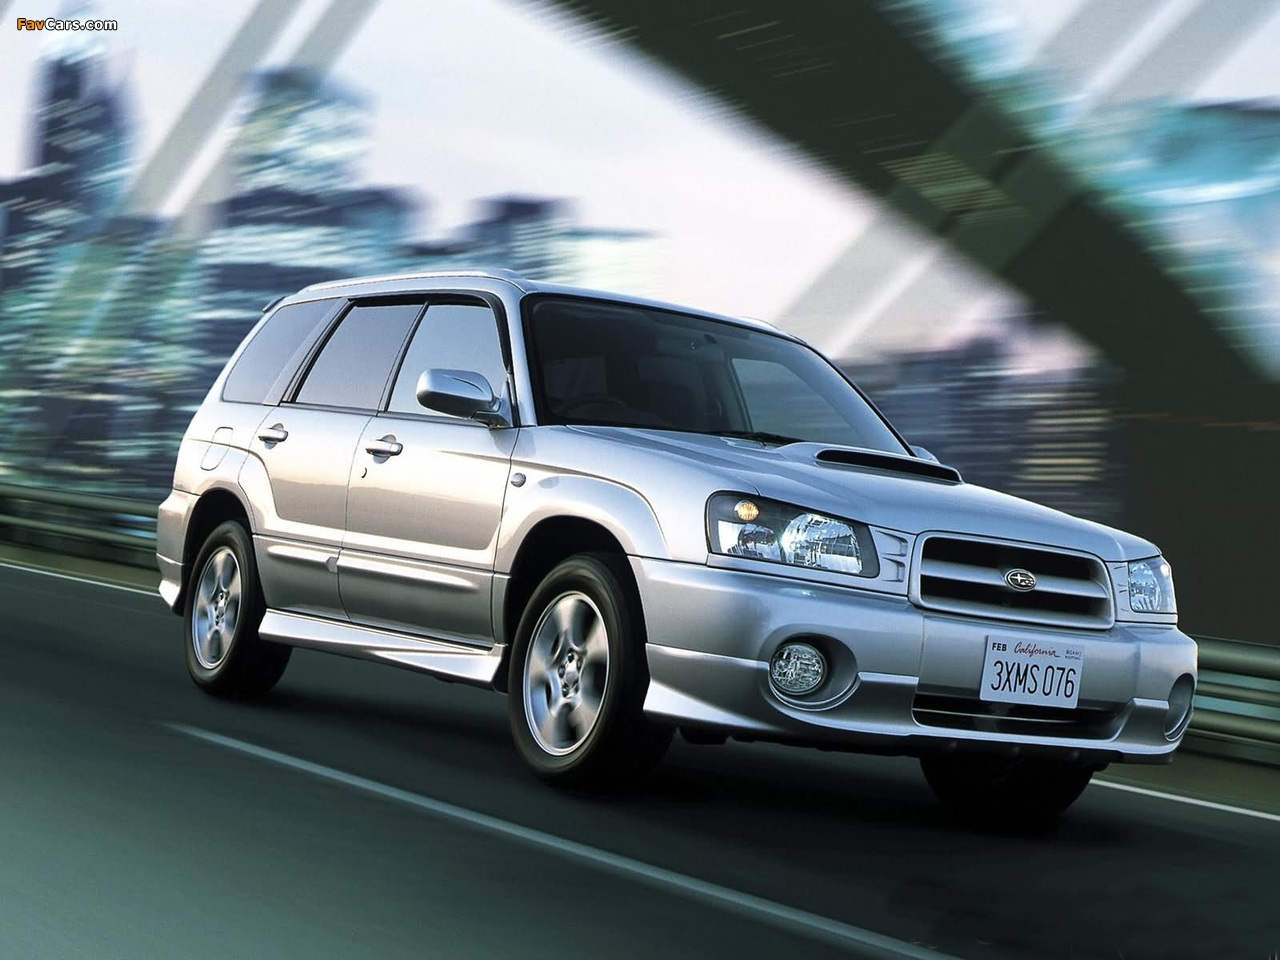 Images of Subaru Forester (1280 x 960)